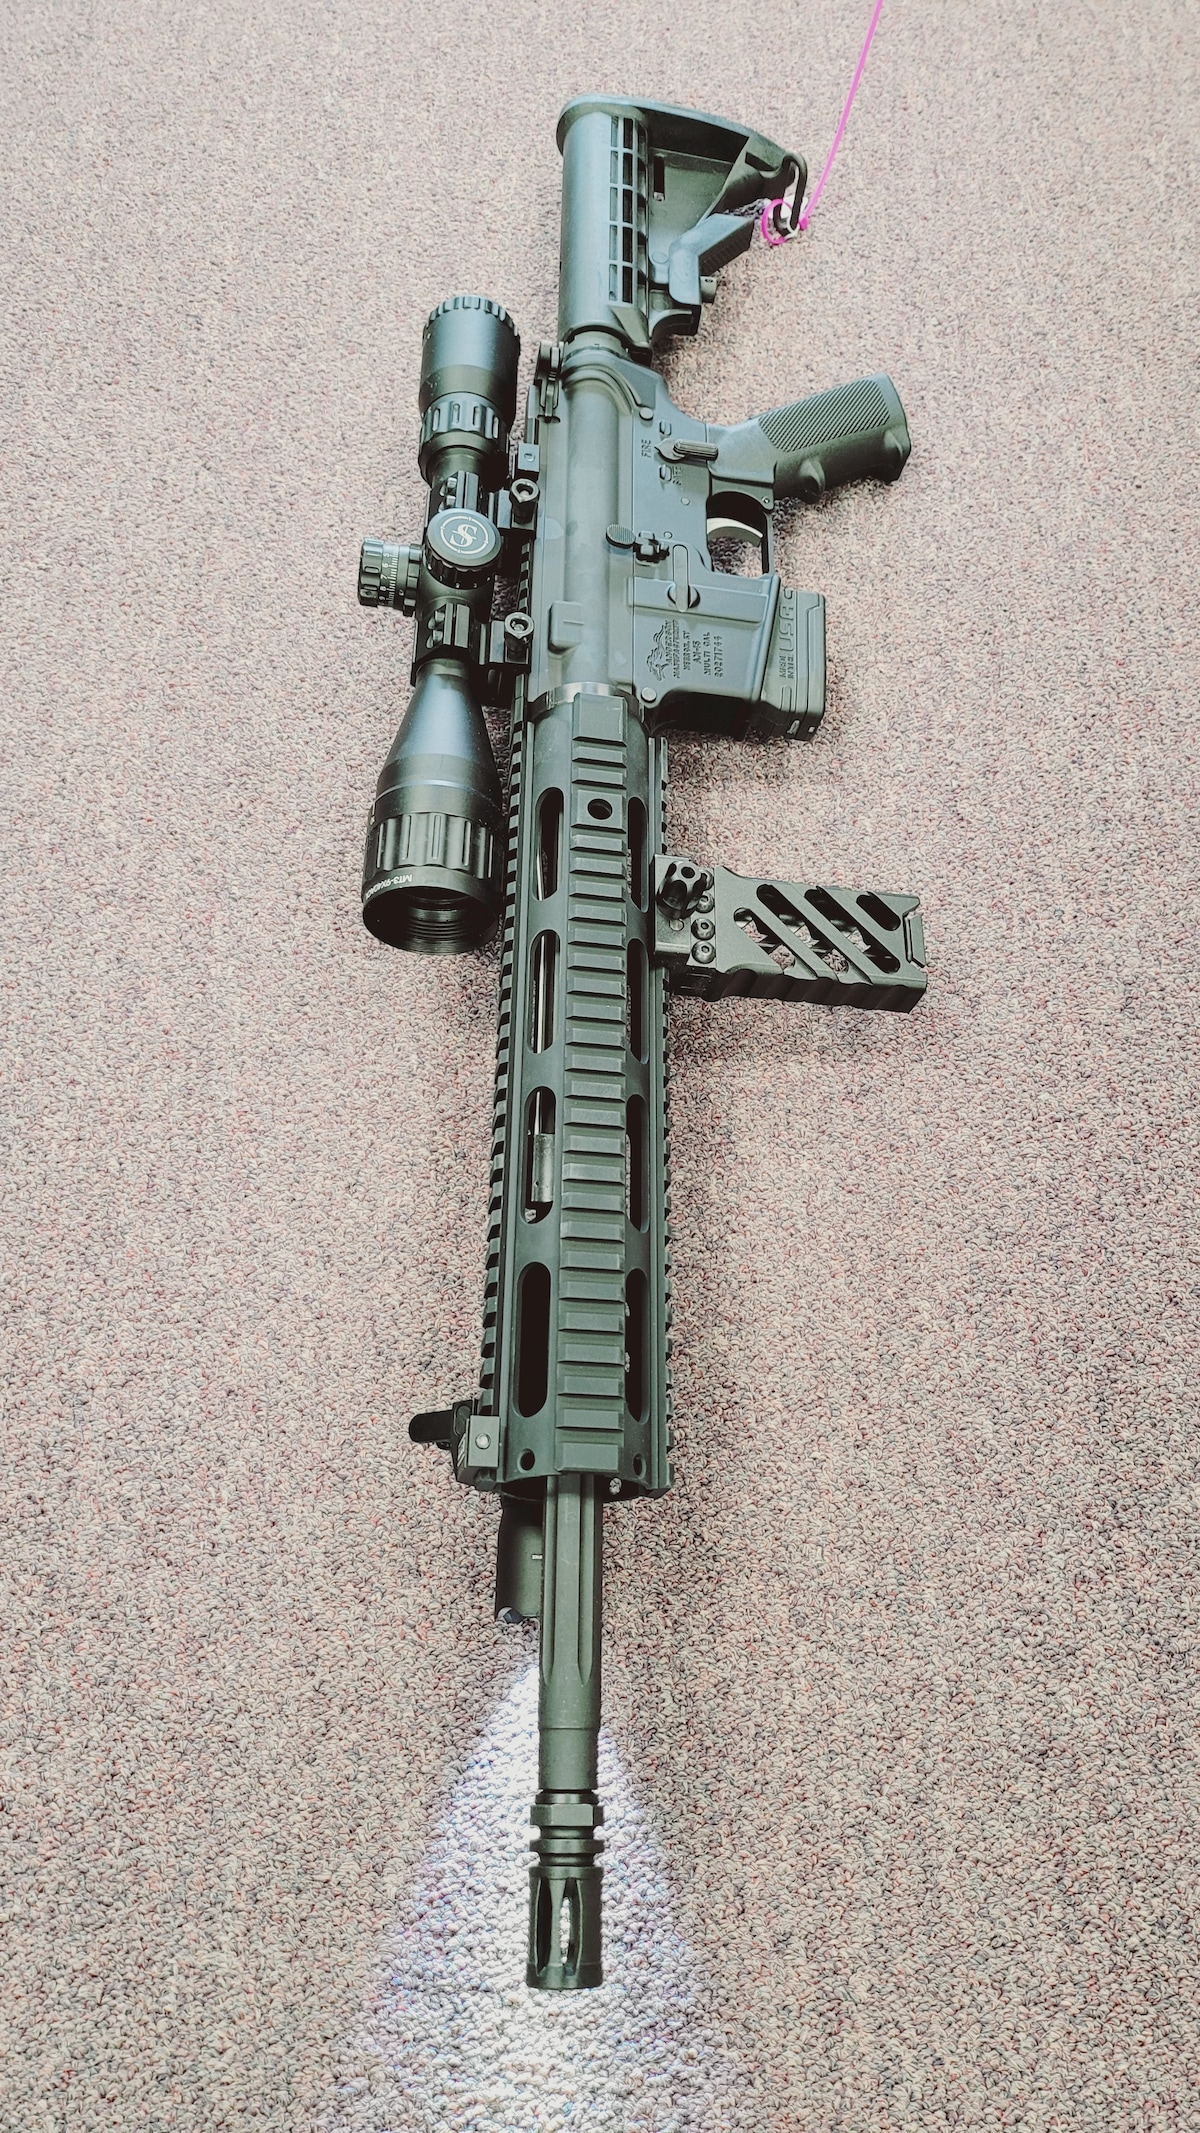 ANDERSON MFG. fully loaded ar15 am15 with 10rd or 30rd magazine